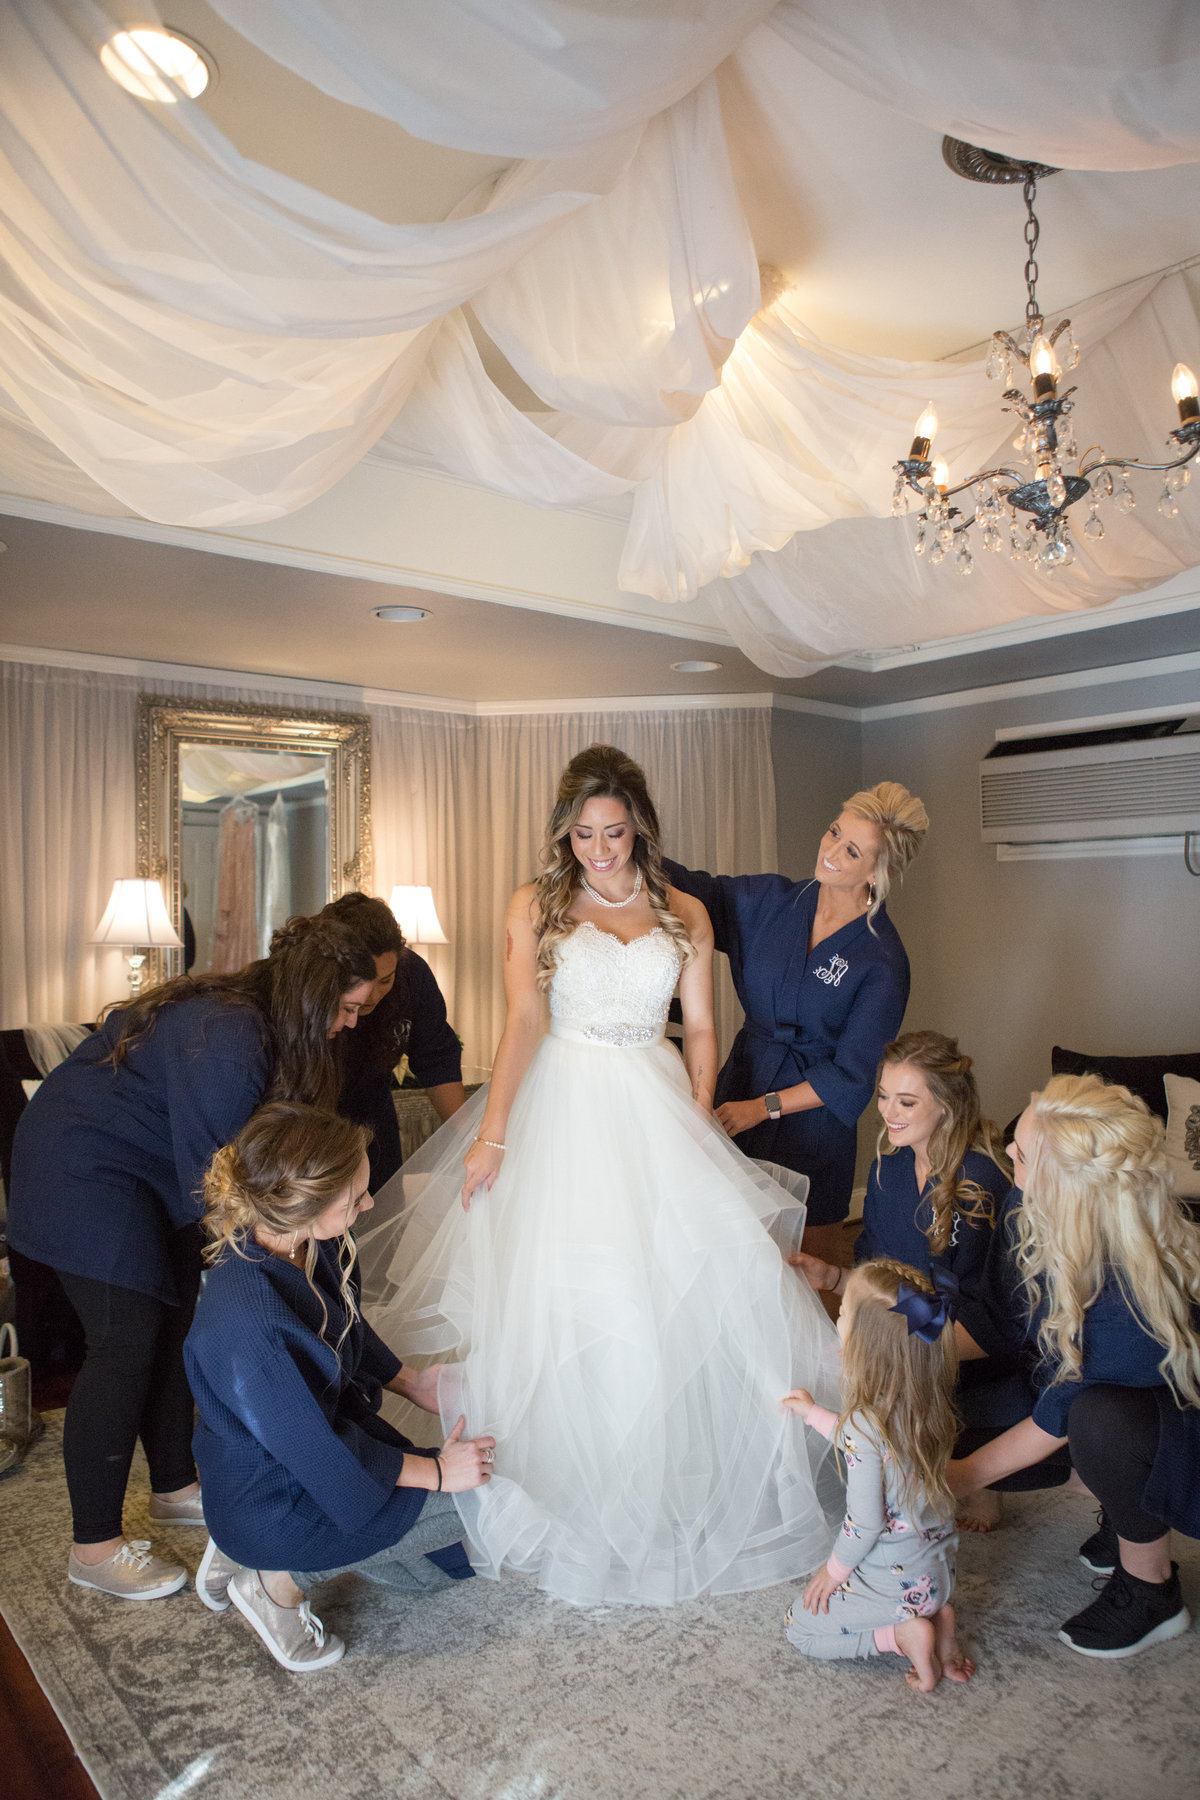 bridesmaids in robes helping bride get ready